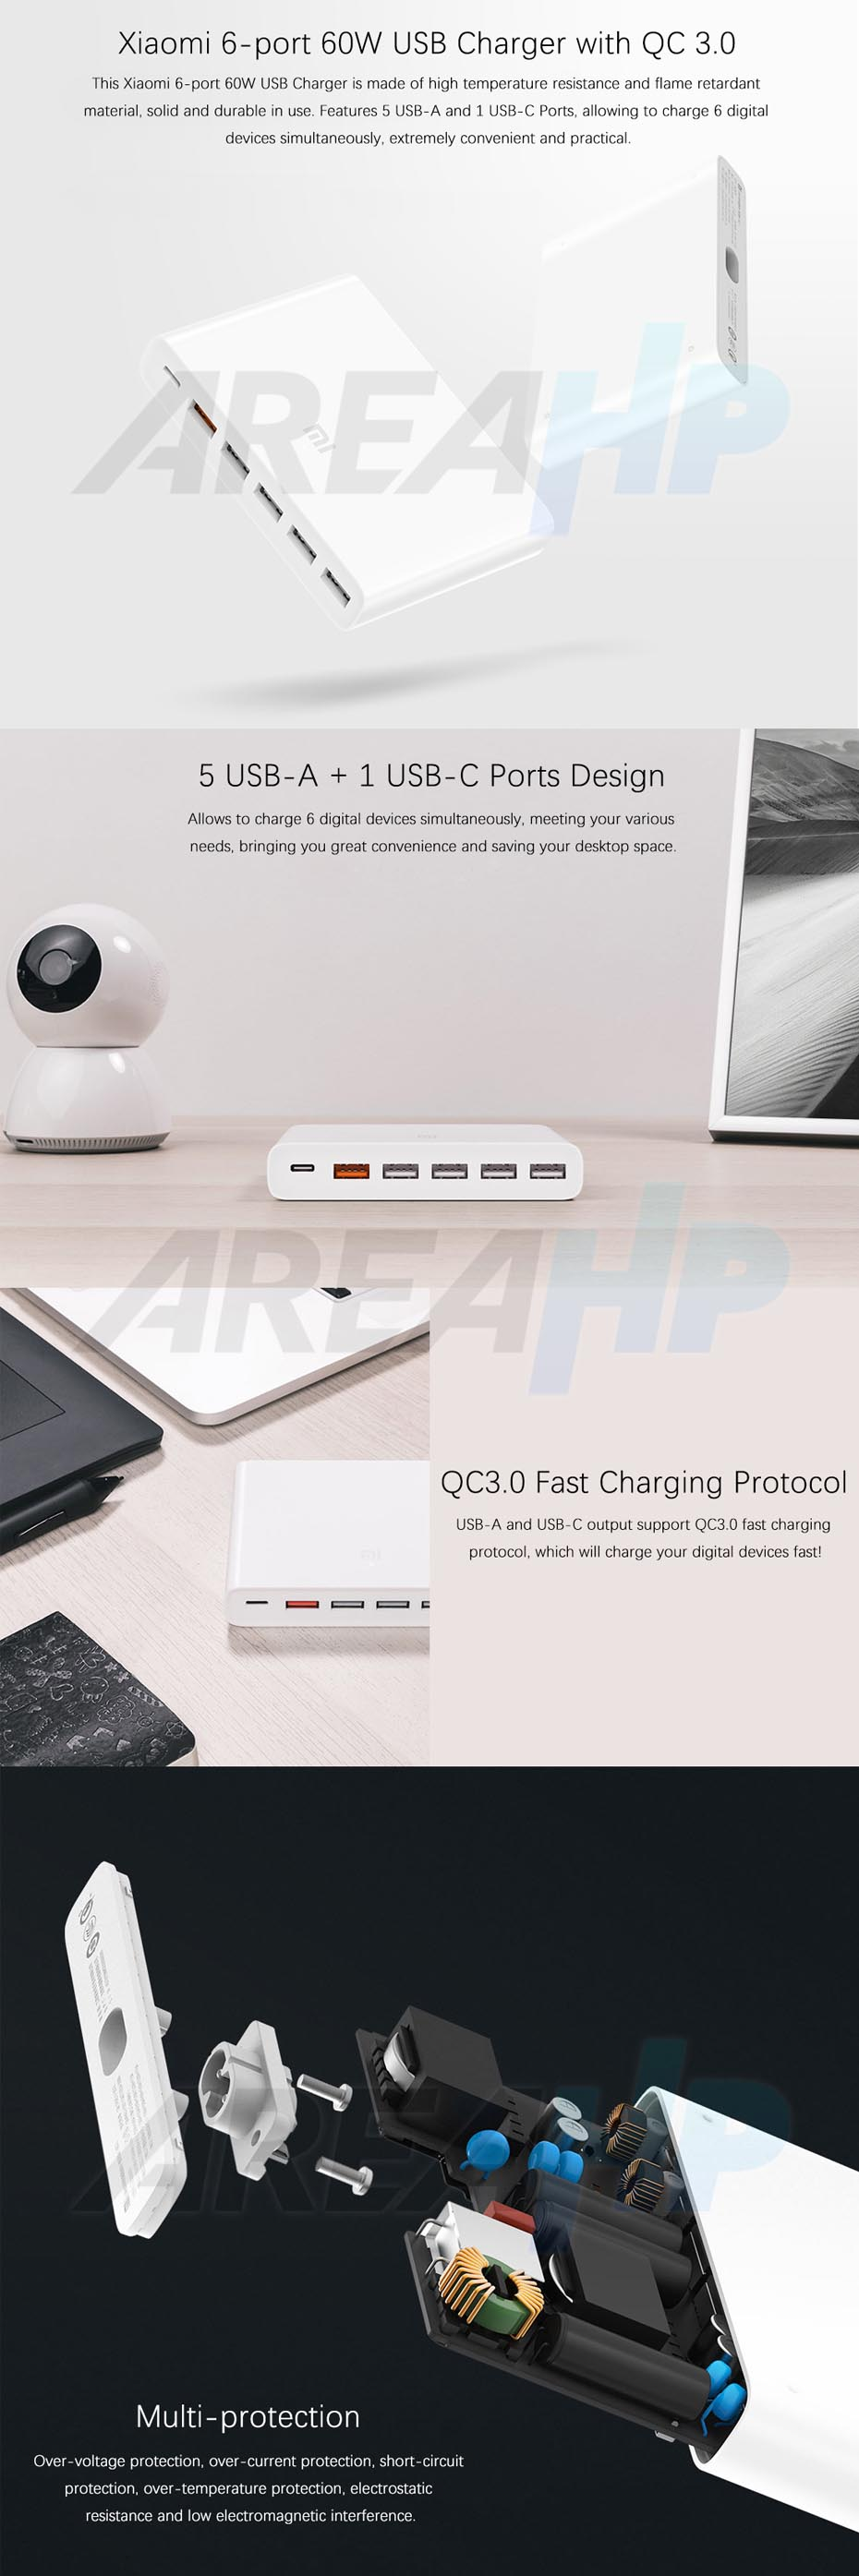 Xiaomi Universal Fast Charger 6 Port 60W Support USB Type C QC 3 Overview